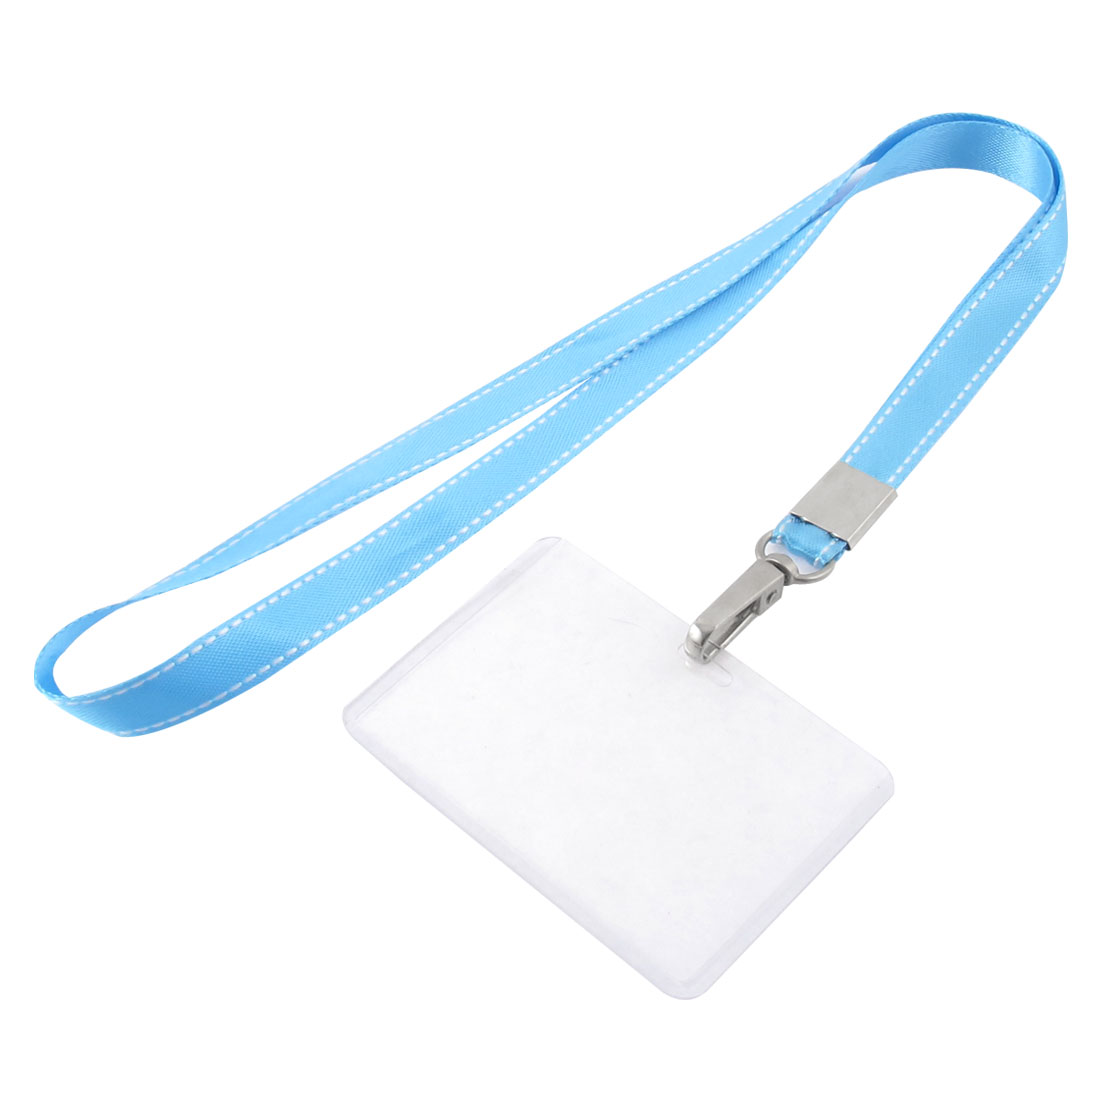 Lanyard Plastic Horizontal ID Name Employee Card Tag Holder Sky Blue Clear